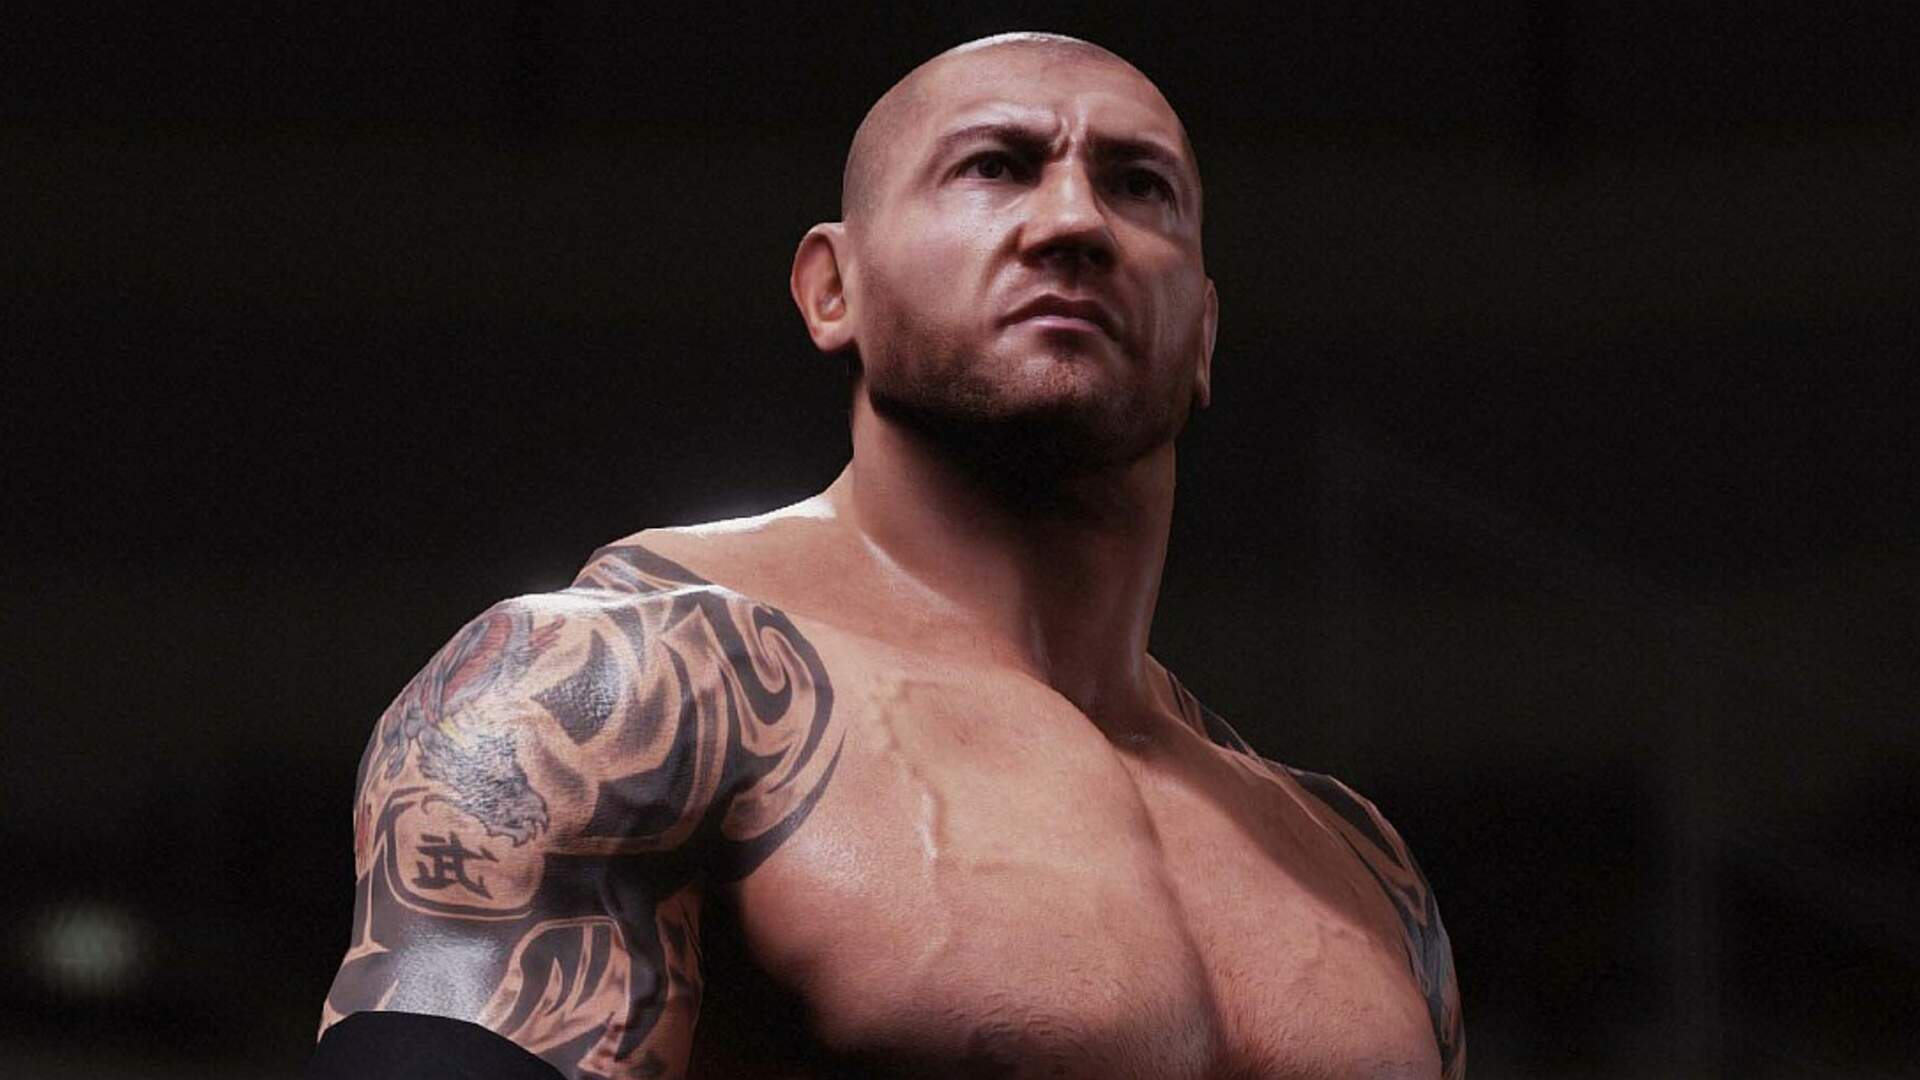 WWE 2K18 Switch Version, Reviews, Release Date, Roster, Season Pass, DLC, Universe Mode, MyCareer, Gameplay Improvements, New Graphics, Trailer - Everything we Know